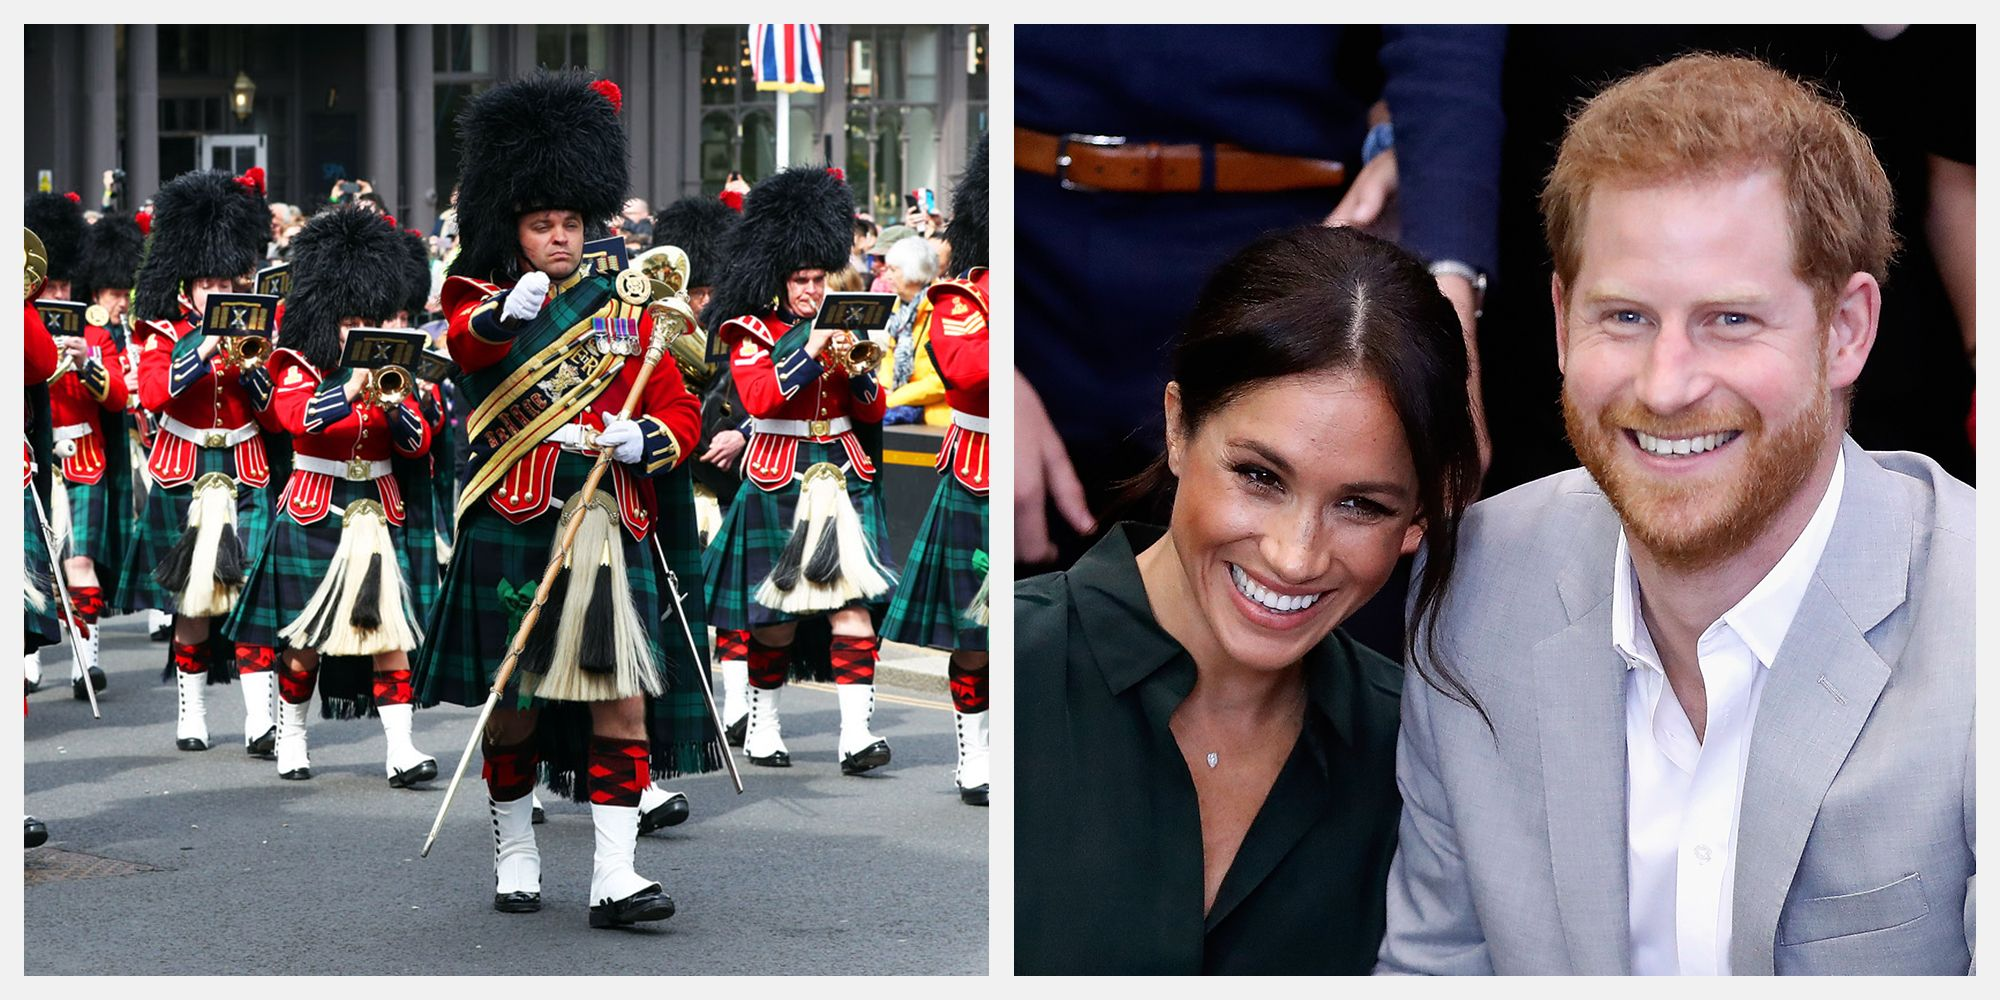 meghan markle prince harry royal baby winsdor castle royal regiment of scotland changing of the guard